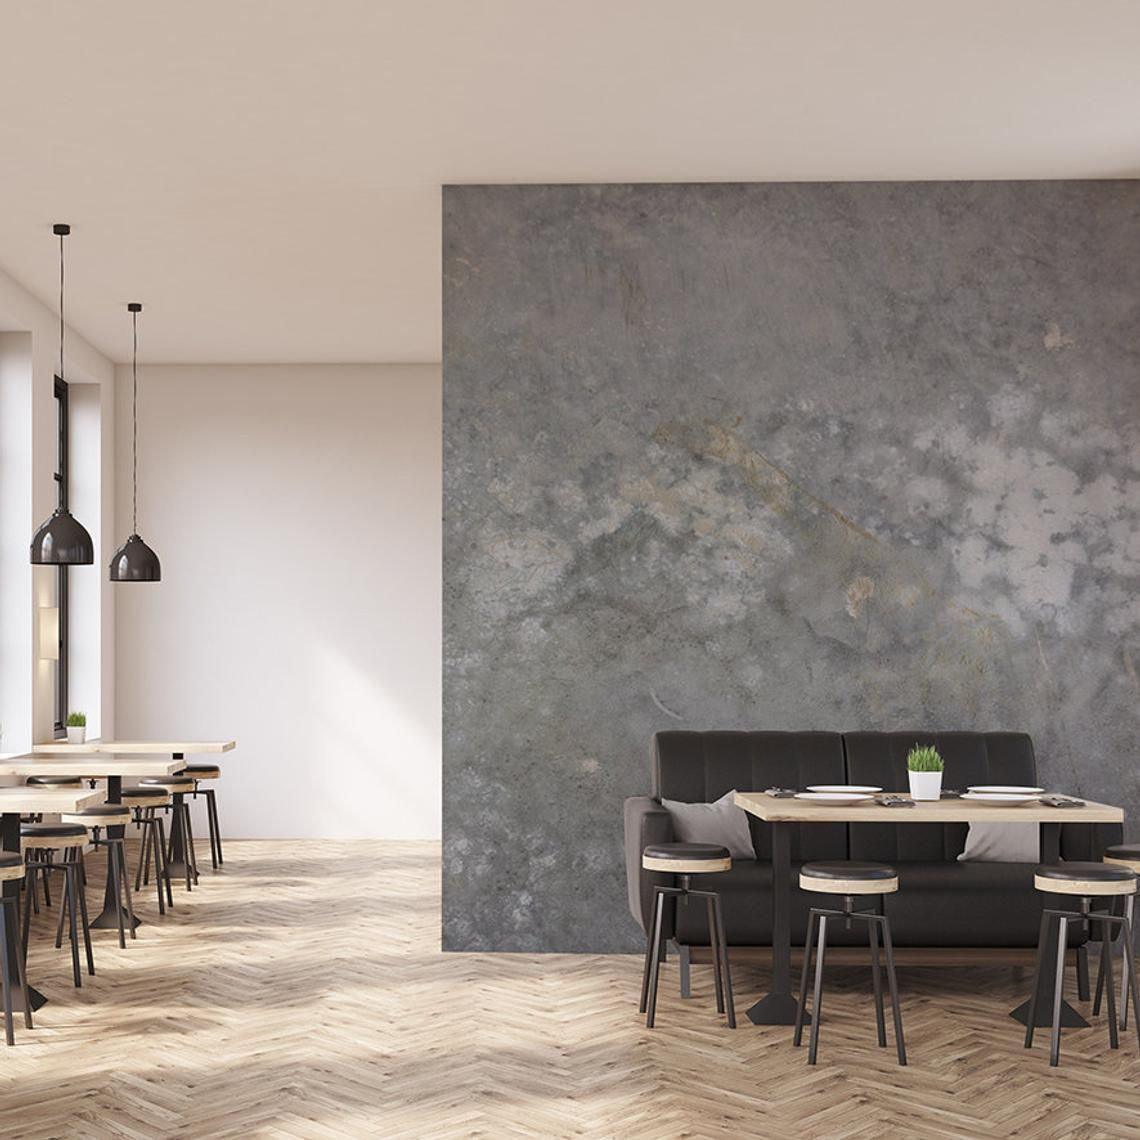 Items Similar To Grunge Concrete Wall Mural And Wallpaper Home And Office Wall Decor Concrete Interiors Greg On Etsy Wall Paneling Concrete Wall Concrete Interiors